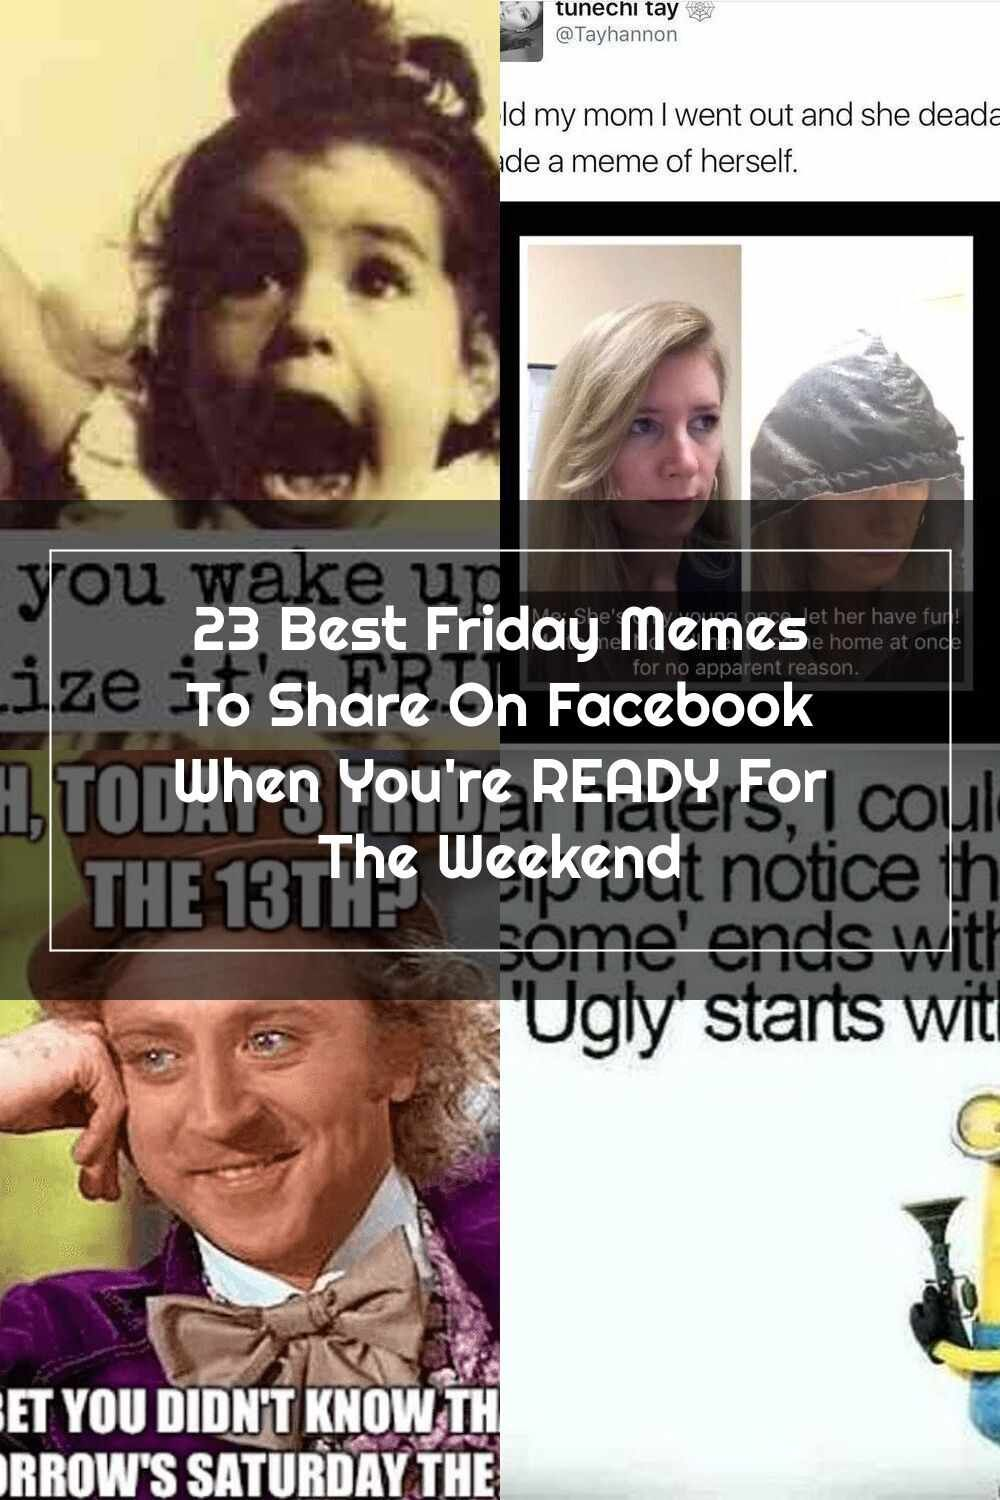 Funny Friday 23 Best Friday Memes To Share On Facebook When You Re Ready For The Weekend